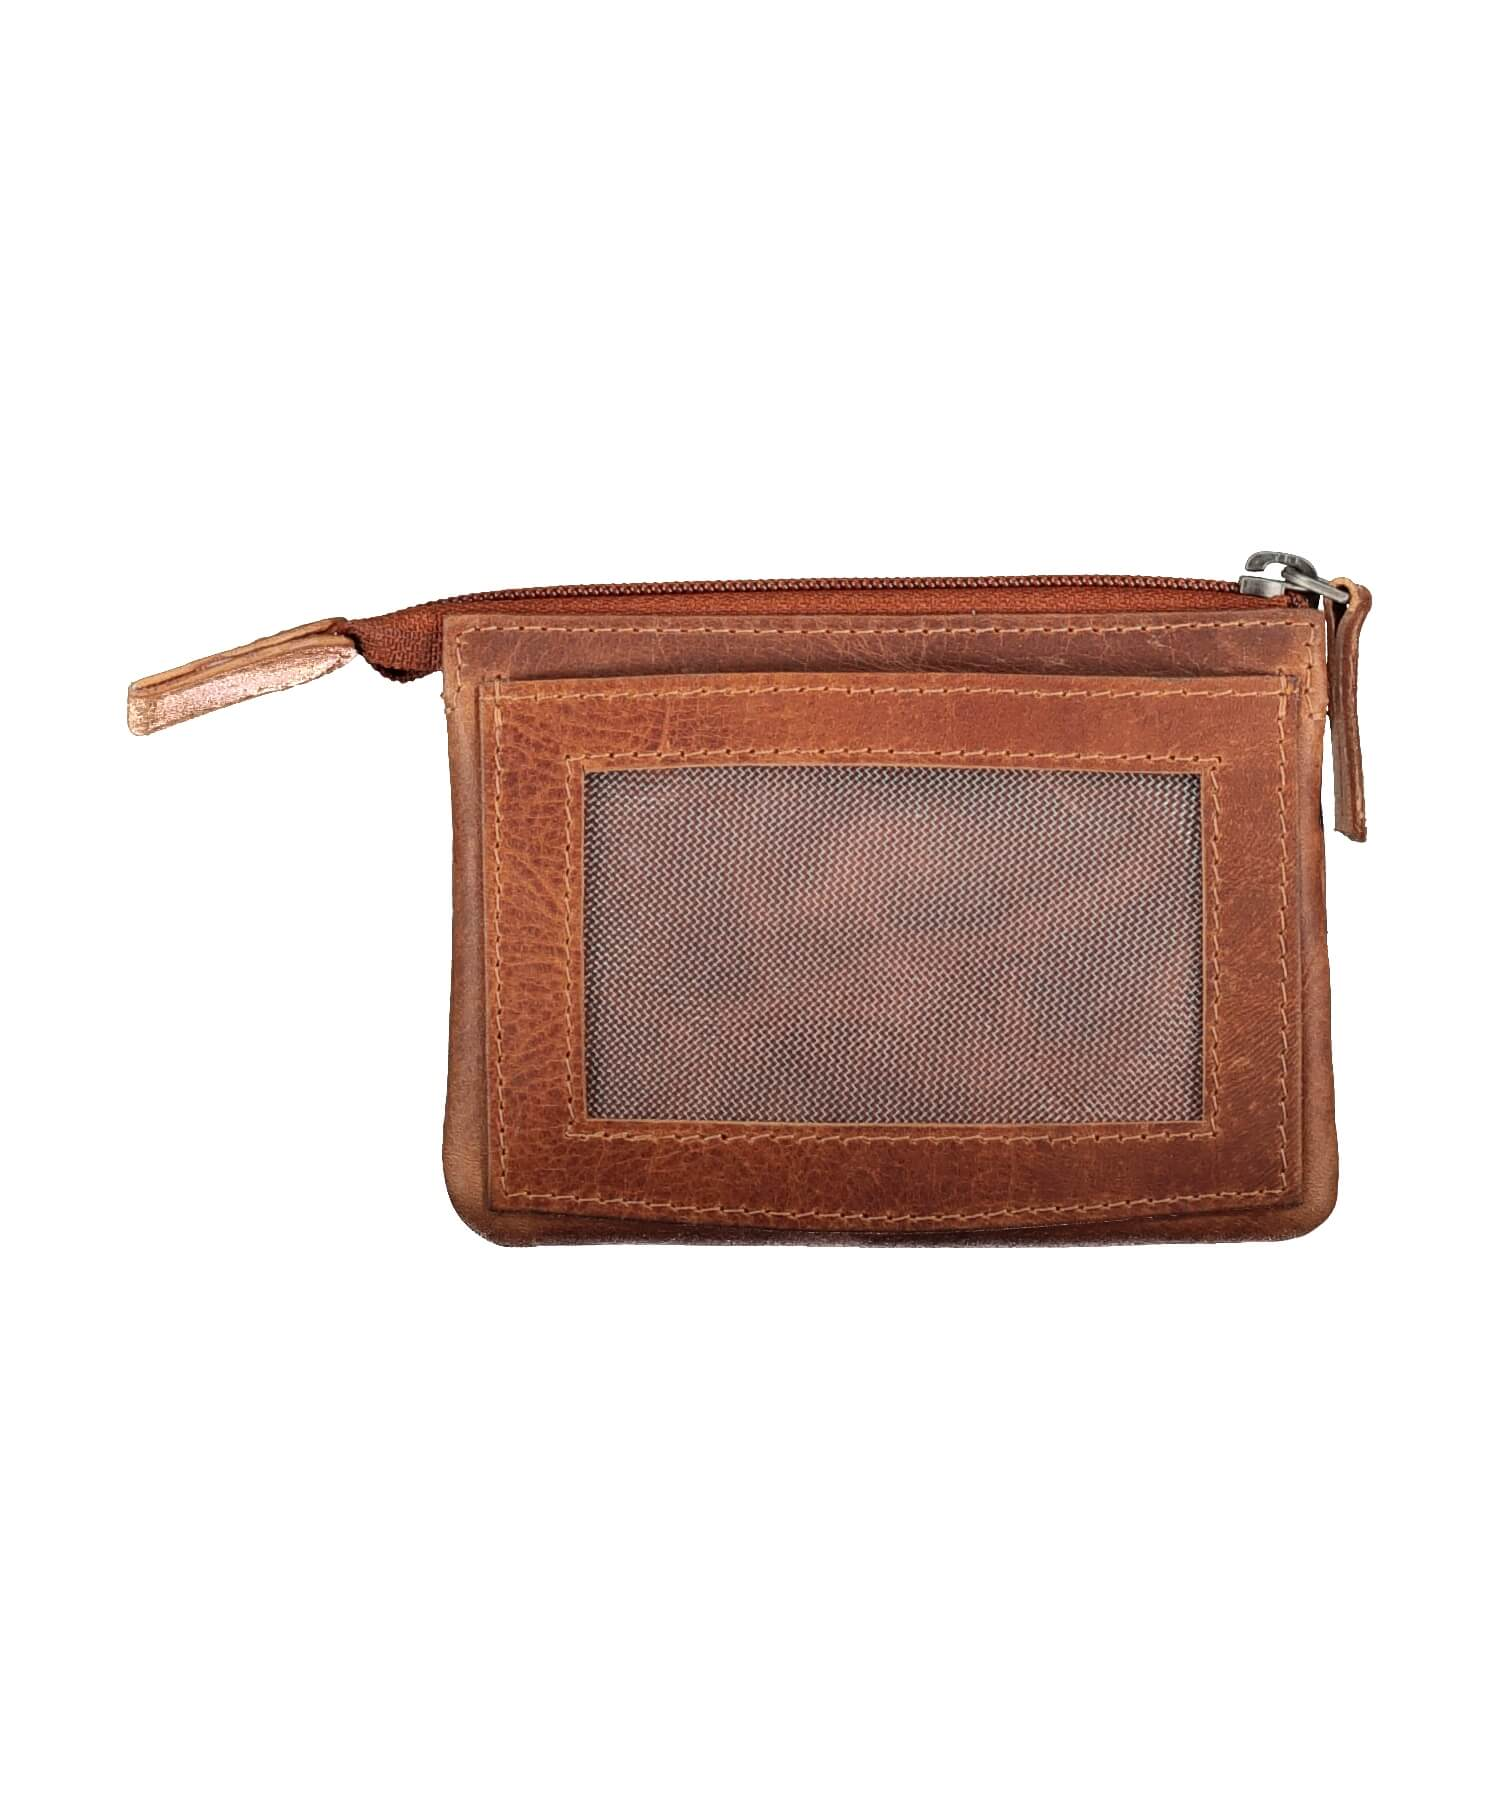 Aisling Coin Purse - Tan - [Lee River] - Bags, Purses & Wallets - Irish Gifts